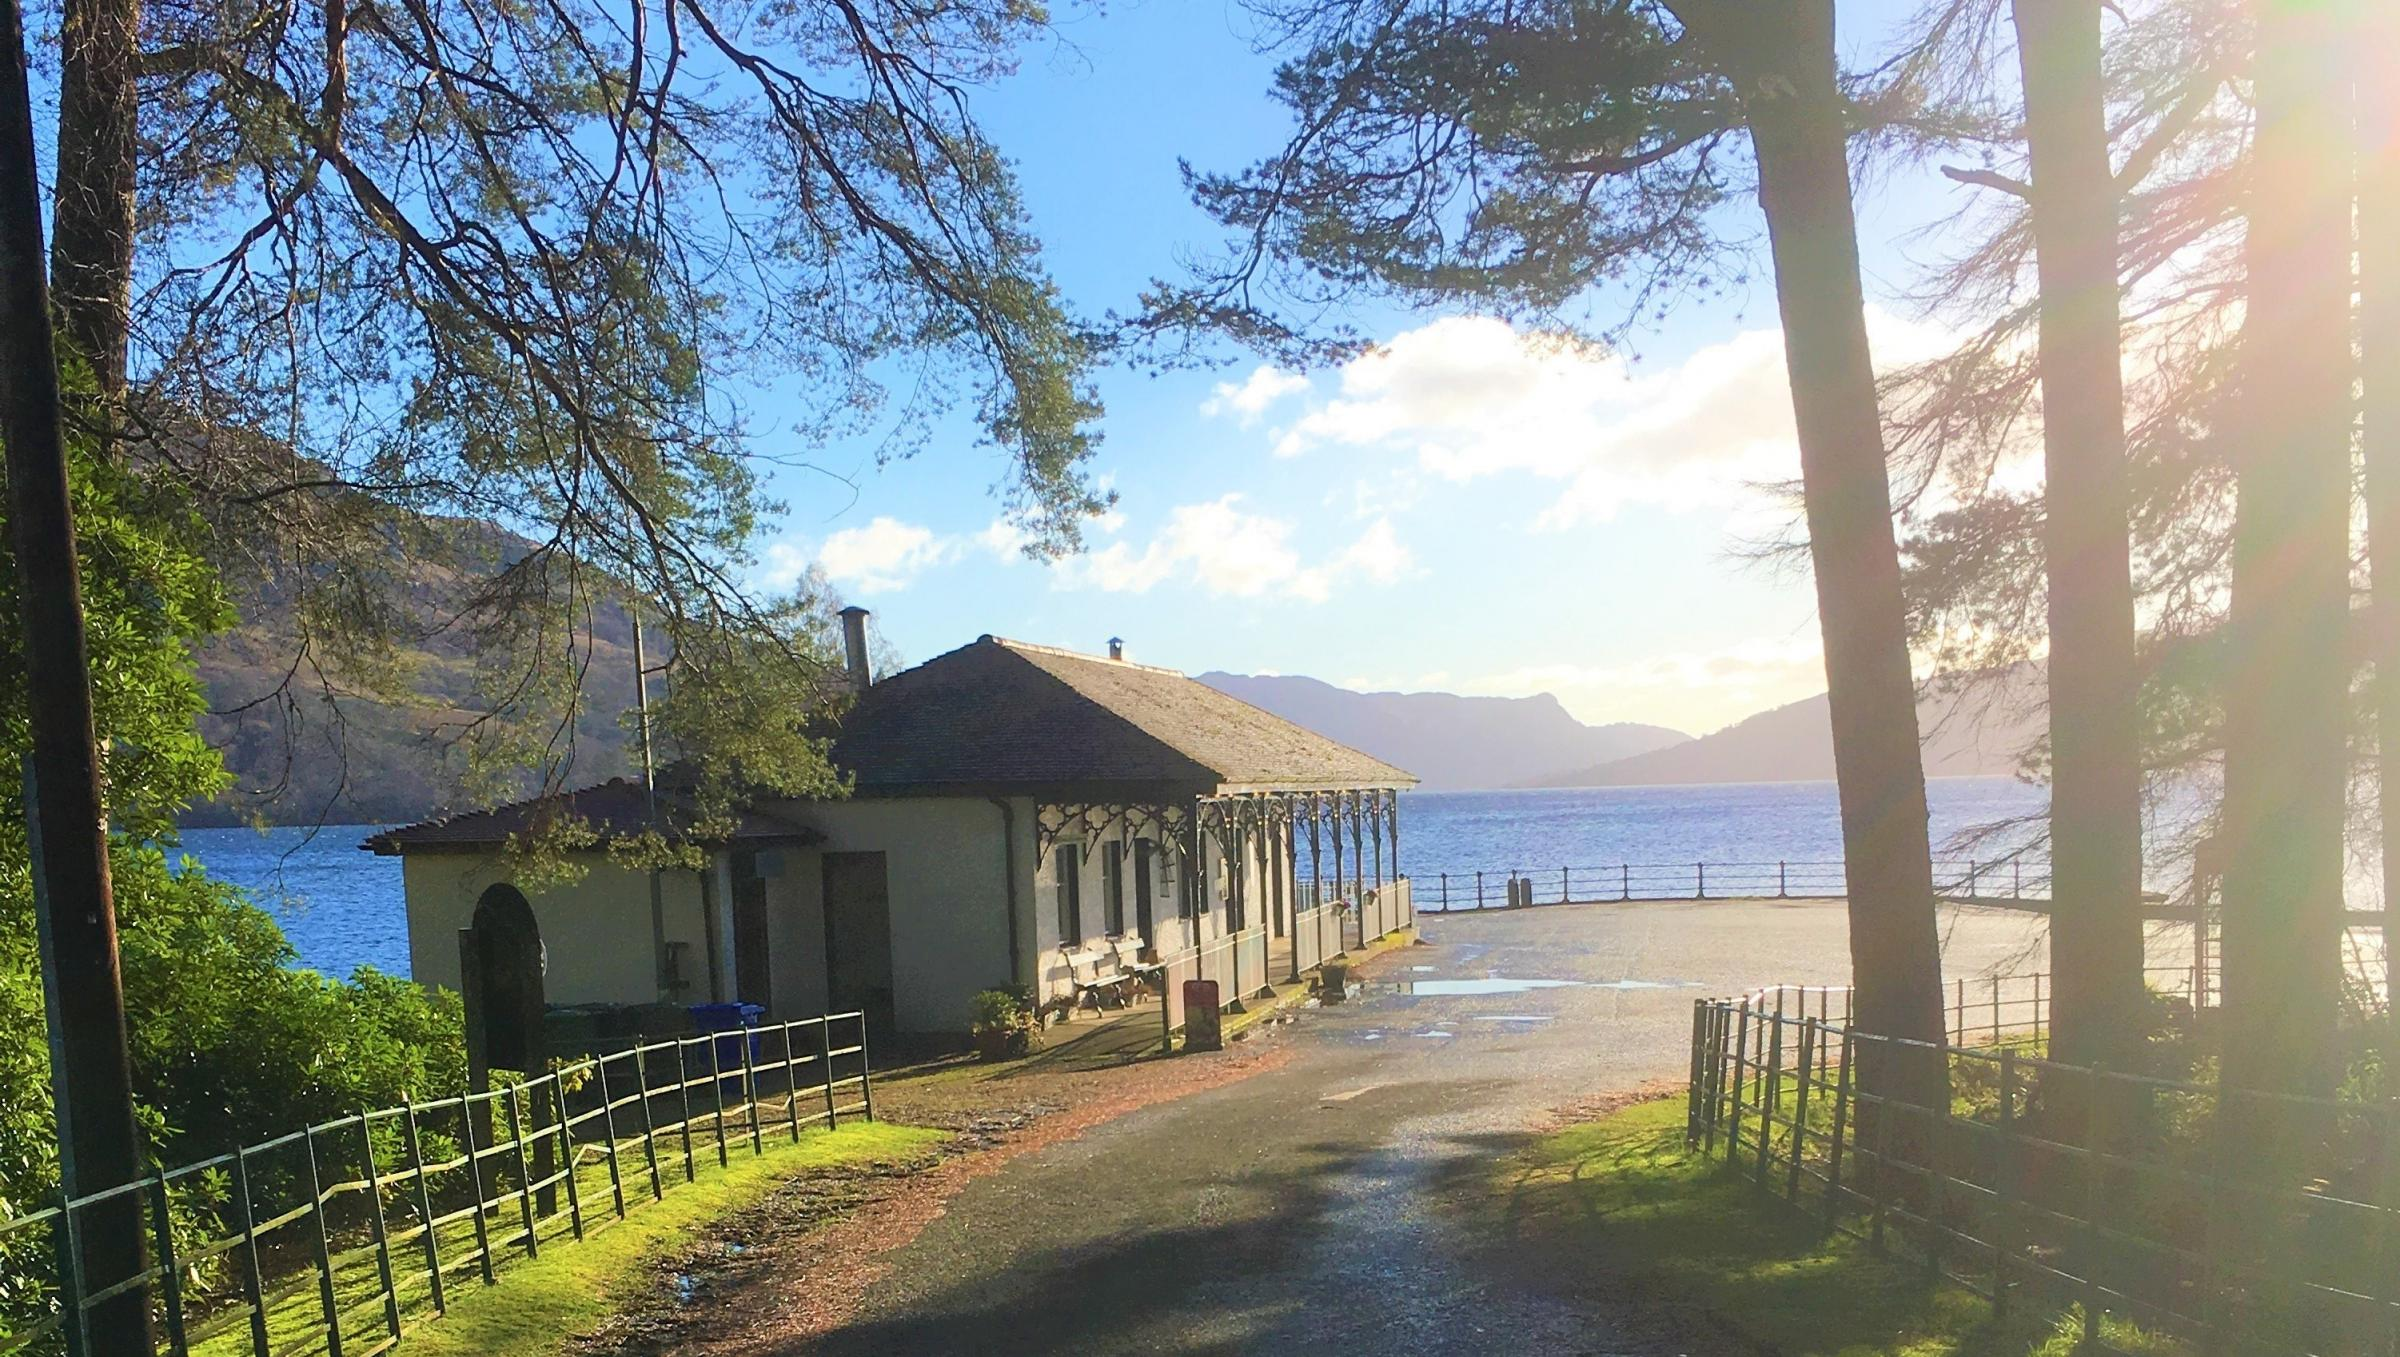 The remote Pier Café at Stronachlachar on Loch Katrine is committed to paying fair wages but still struggles to attract staff